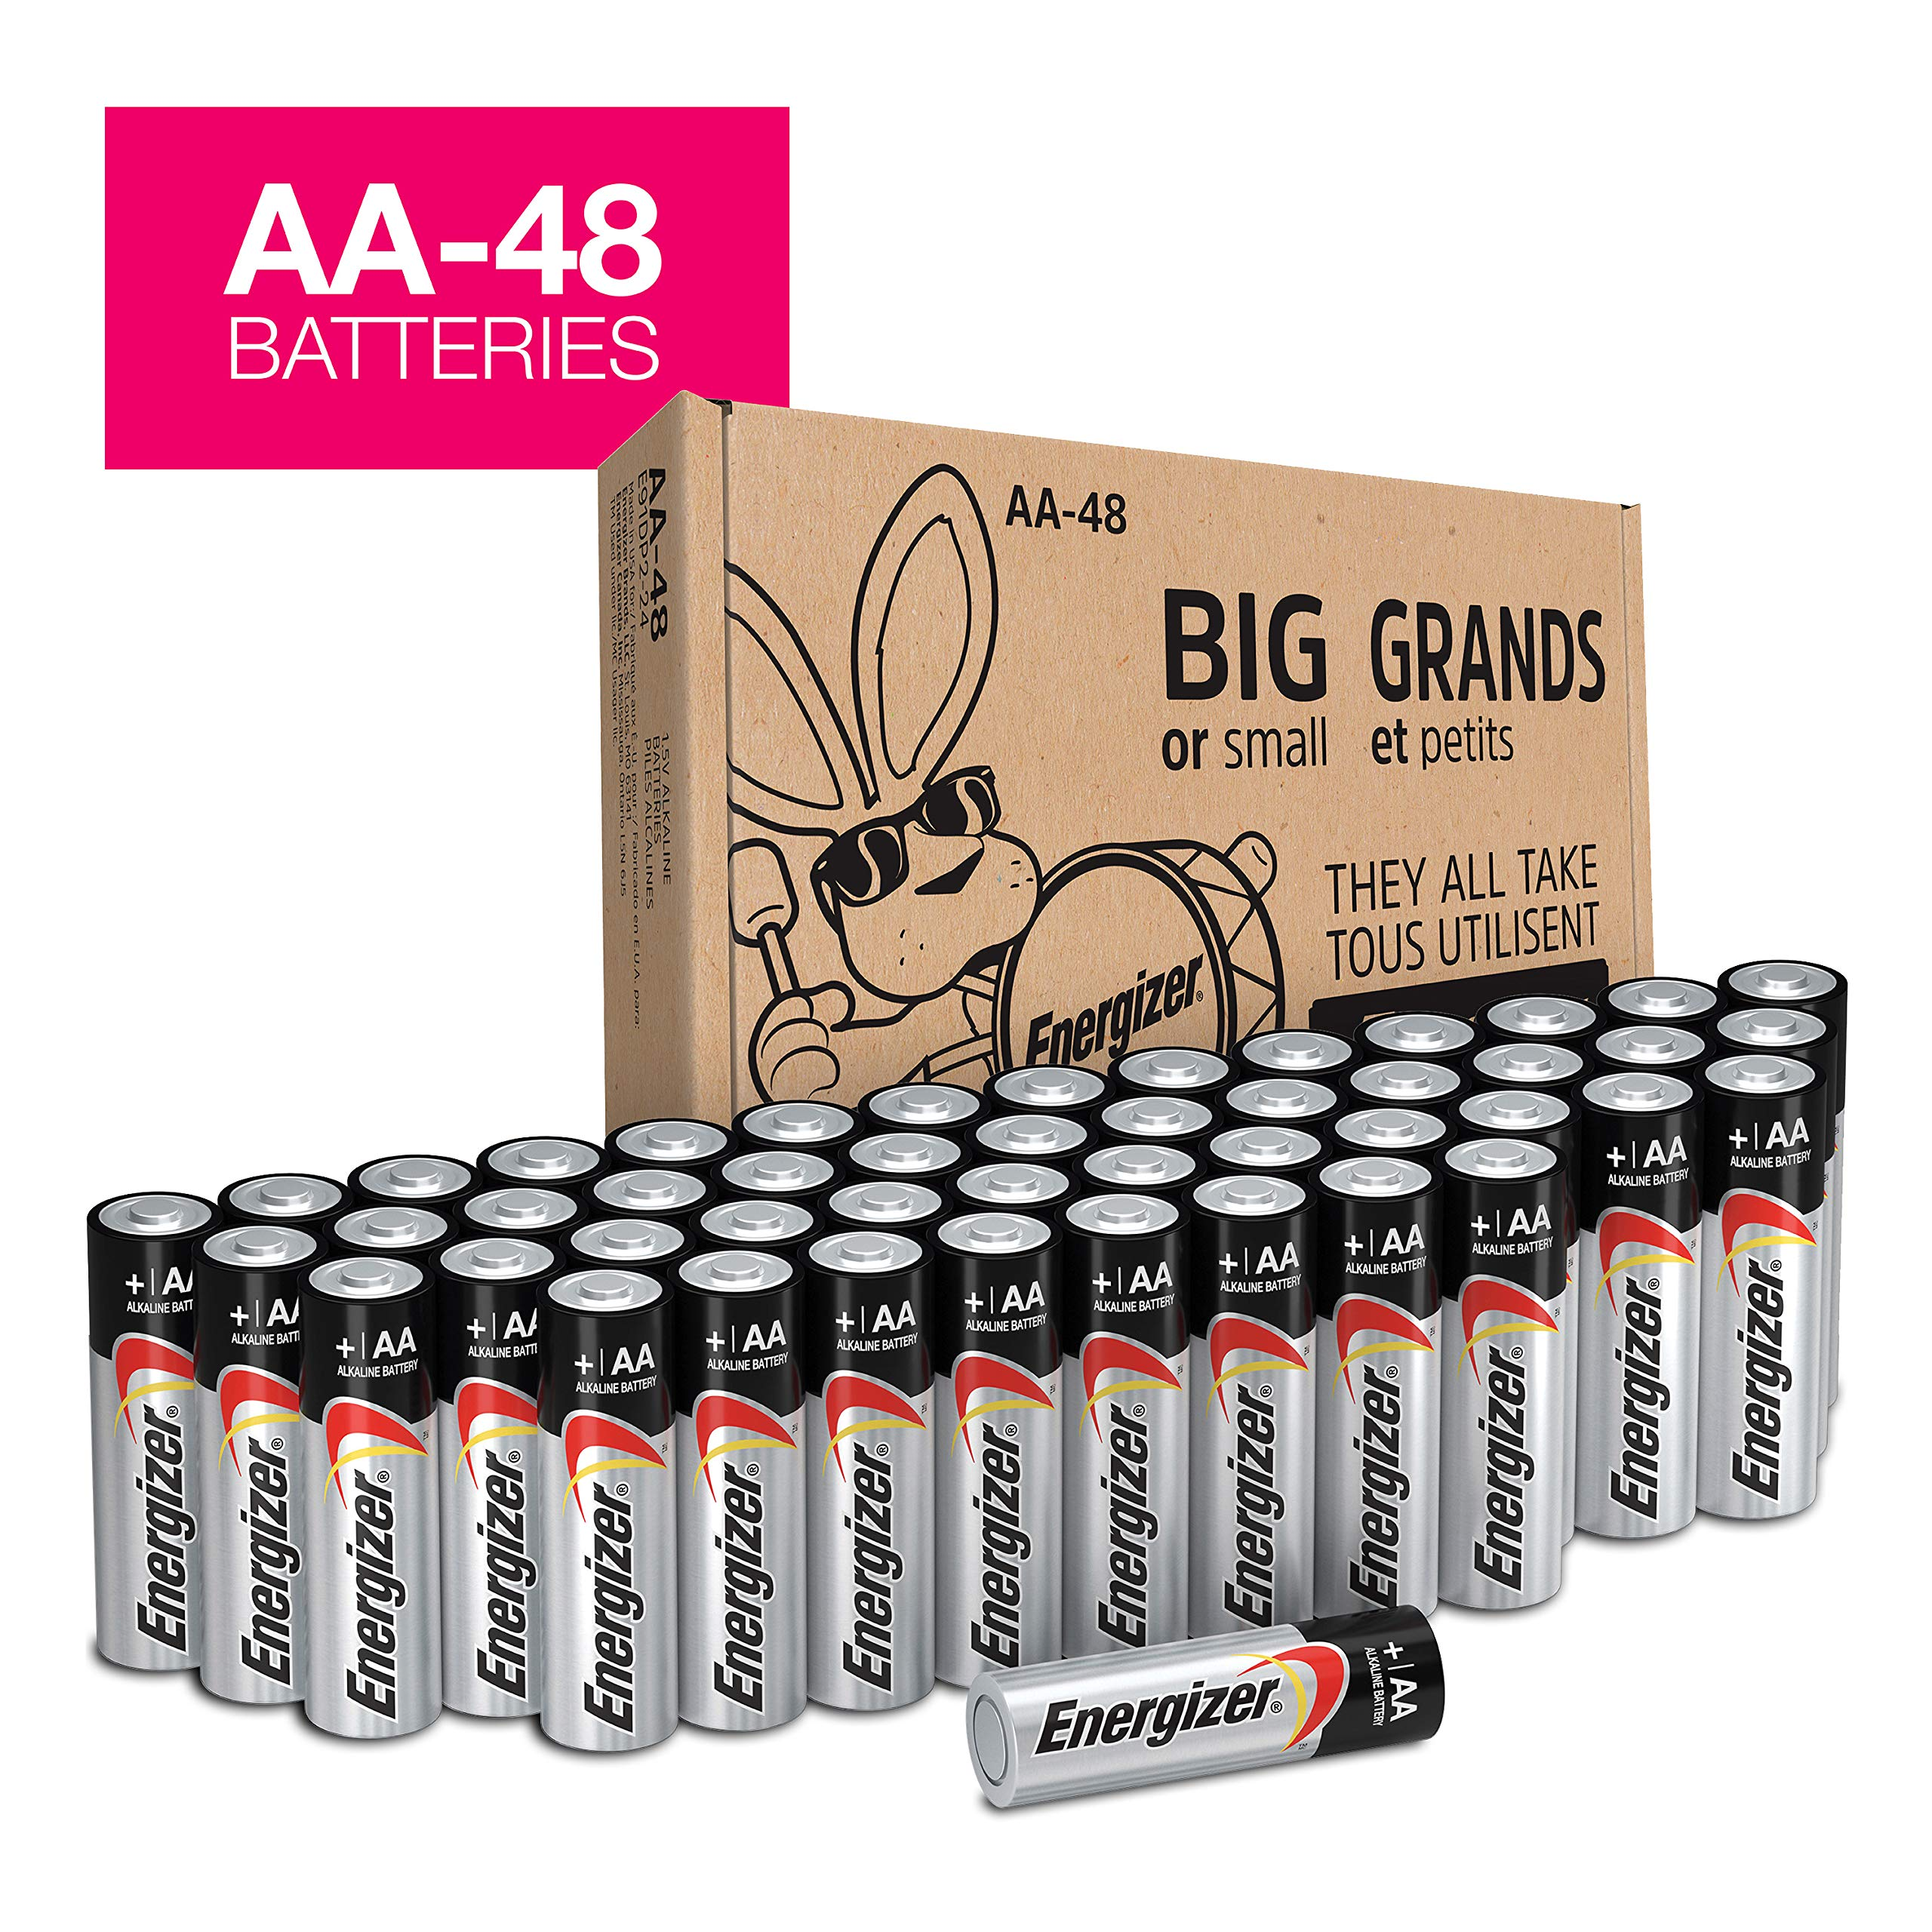 Energizer AA Batteries (48Count), Double A Max Alkaline Battery - Packaging May Vary by Energizer